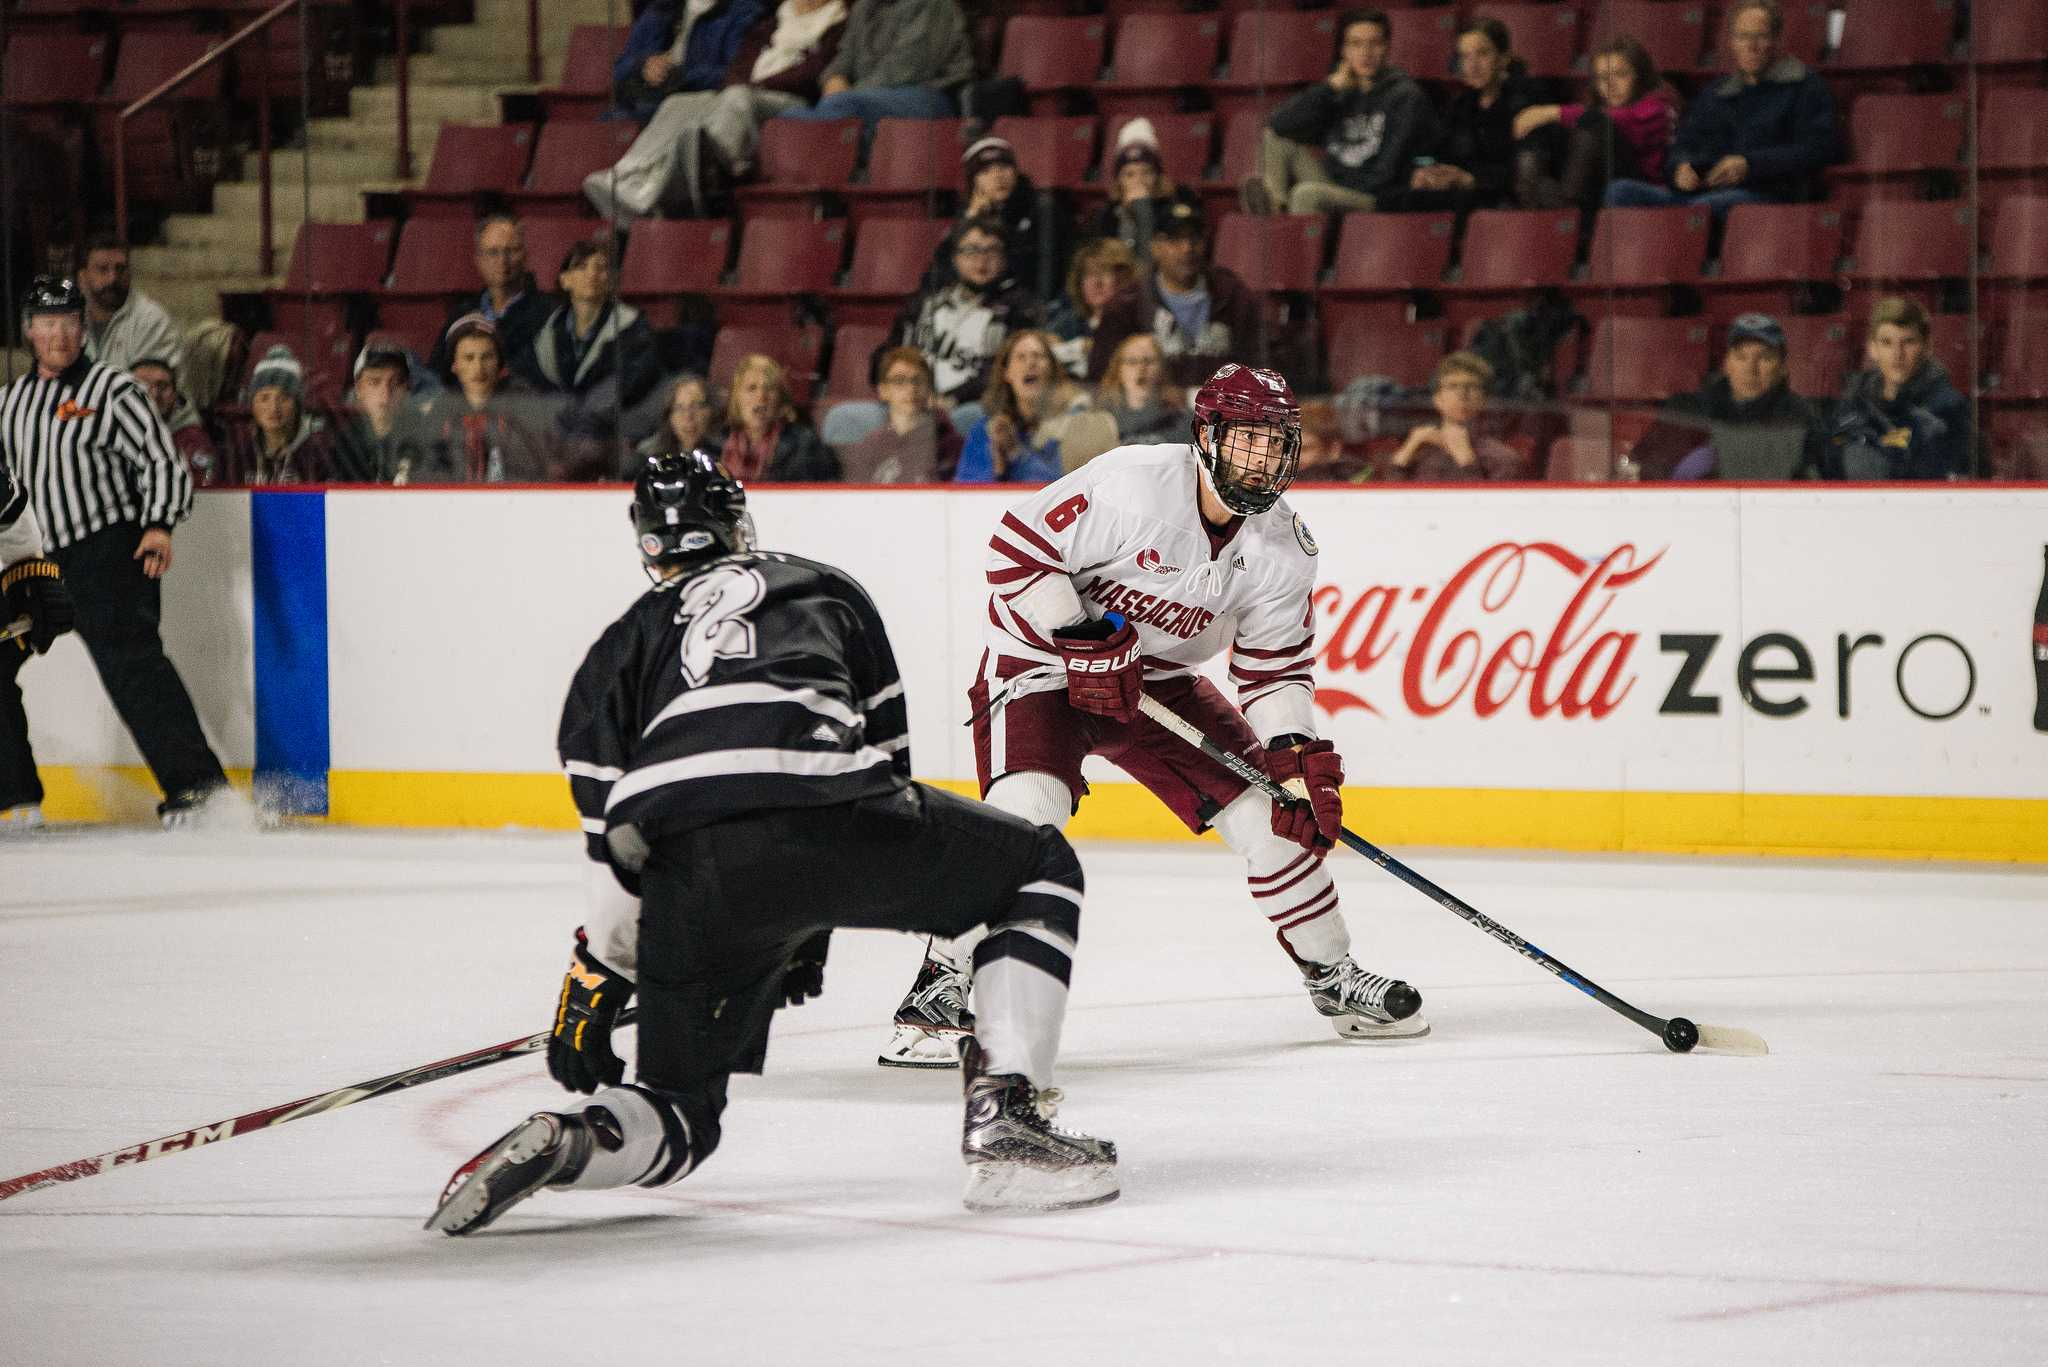 UMass hockey defeats UConn 5-3, sweeps weekend doubleheader